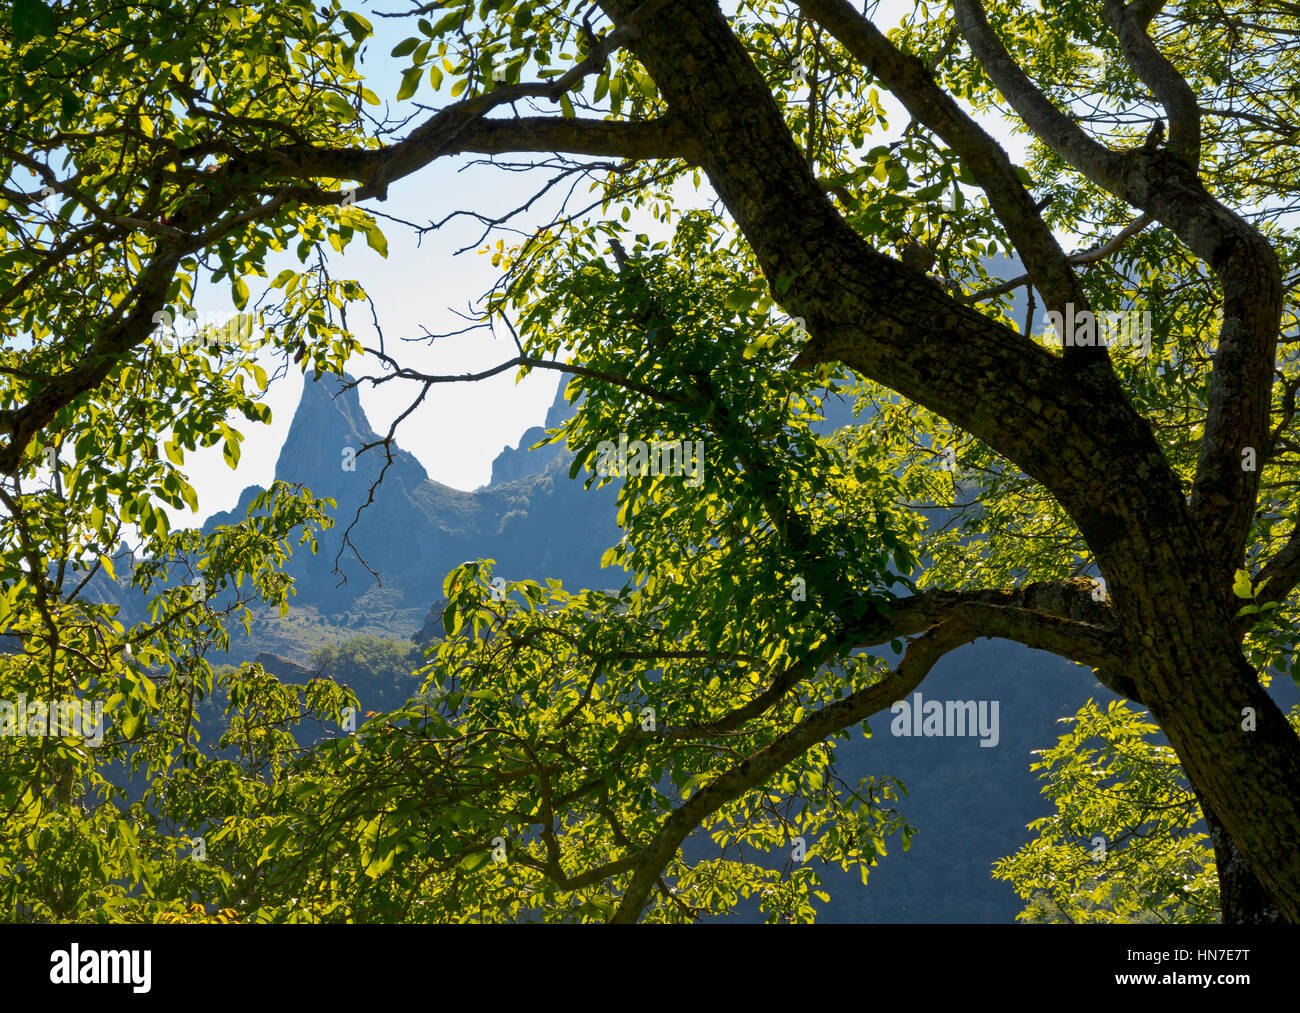 Landscape near Cucayo a mountain village in the Picos de Europa National Park in Cantabria northern Spain - Stock Image